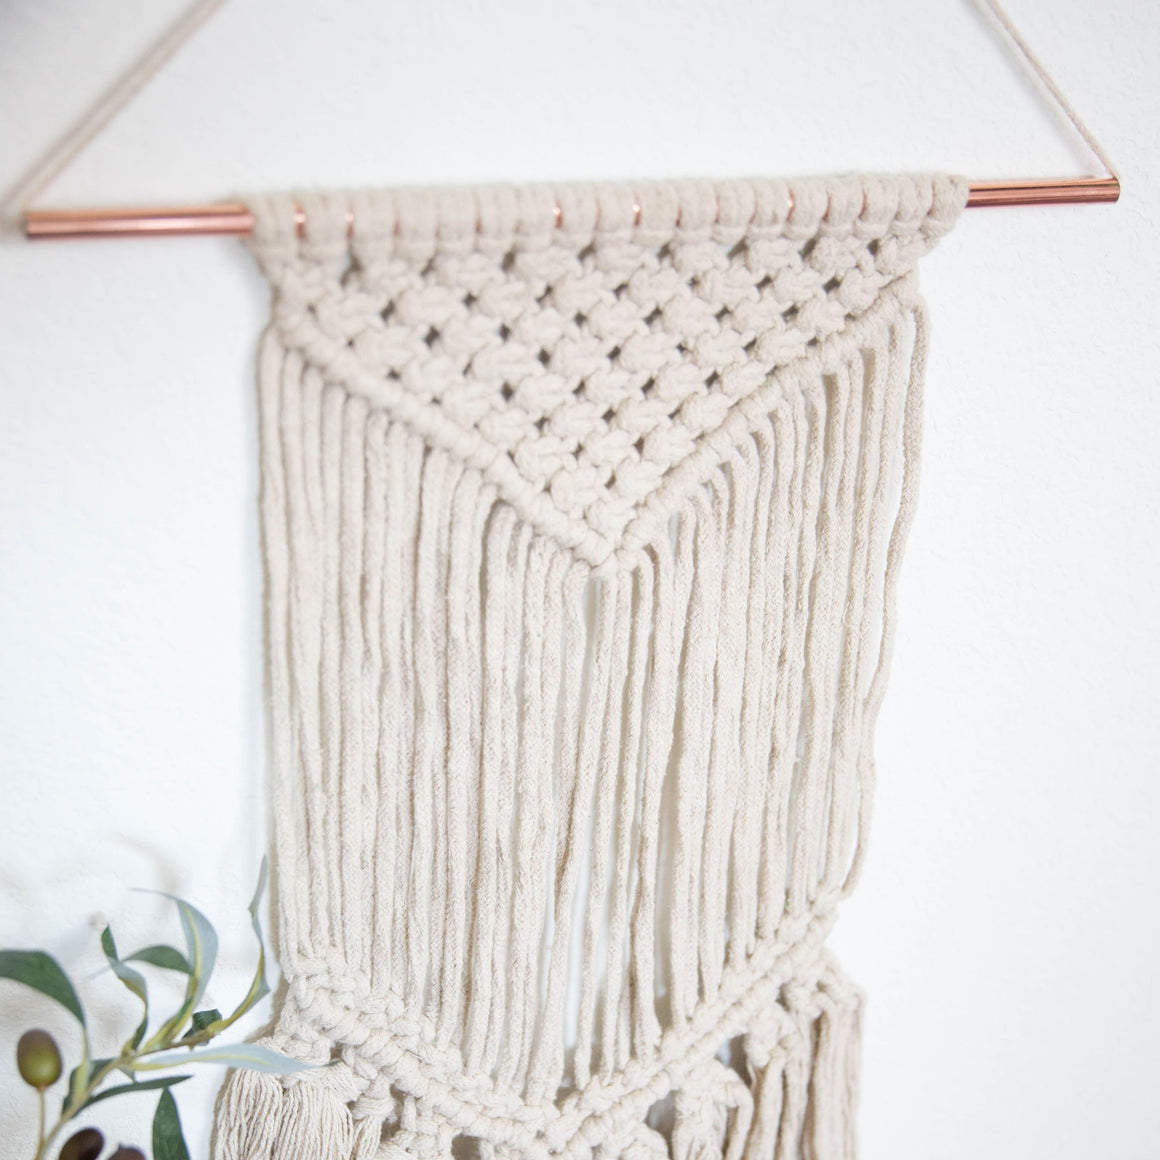 Woven Wall Hanging - Pursuit